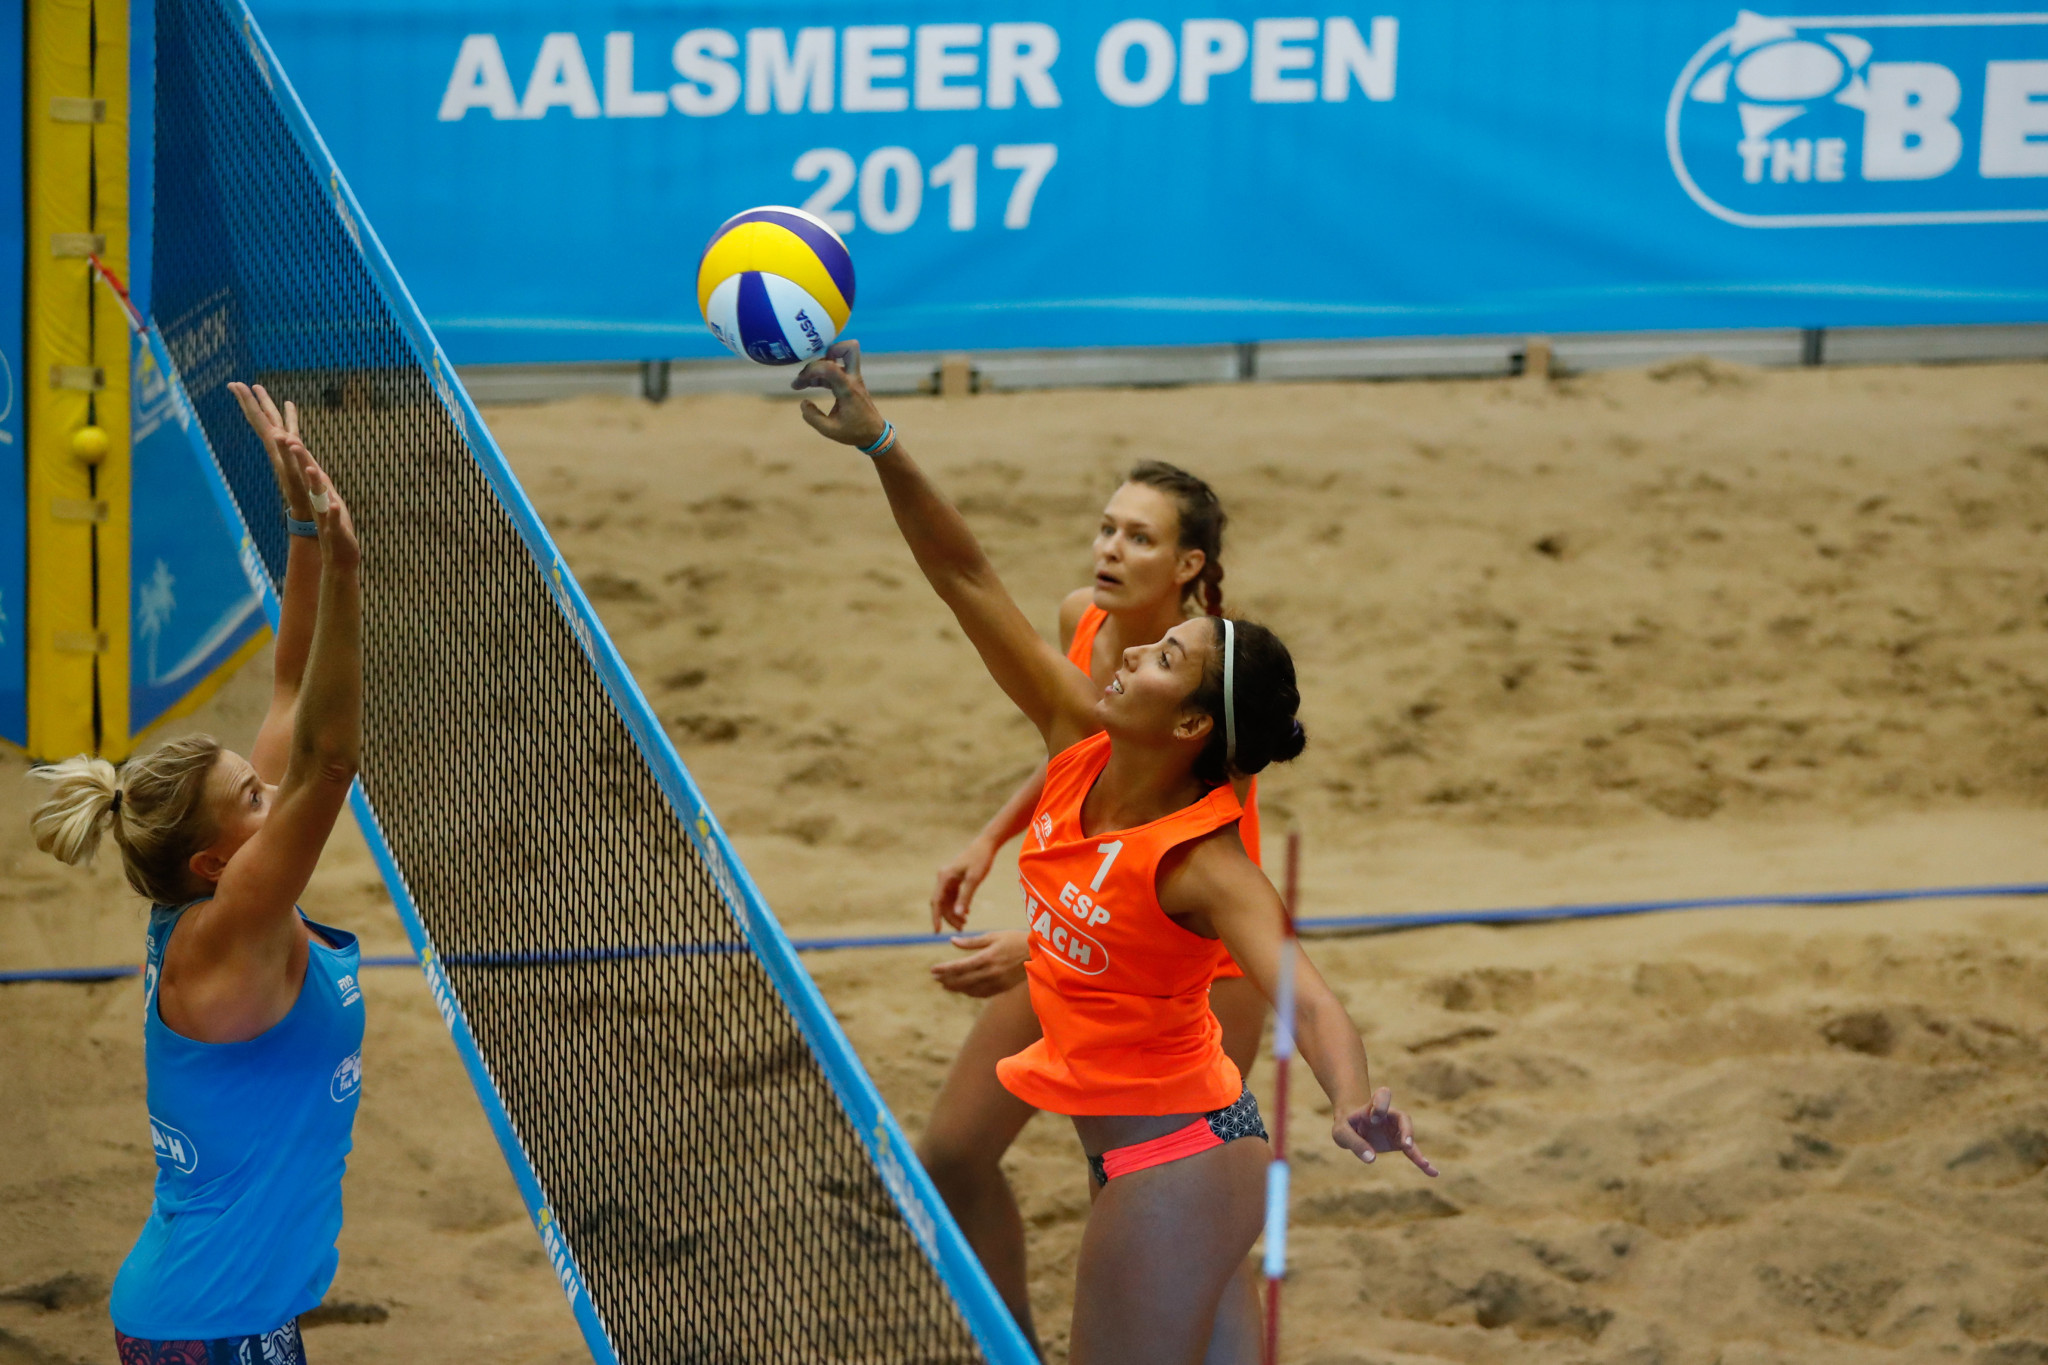 Spanish duo through to second round at FIVB Beach World Tour Aalsmeer Open